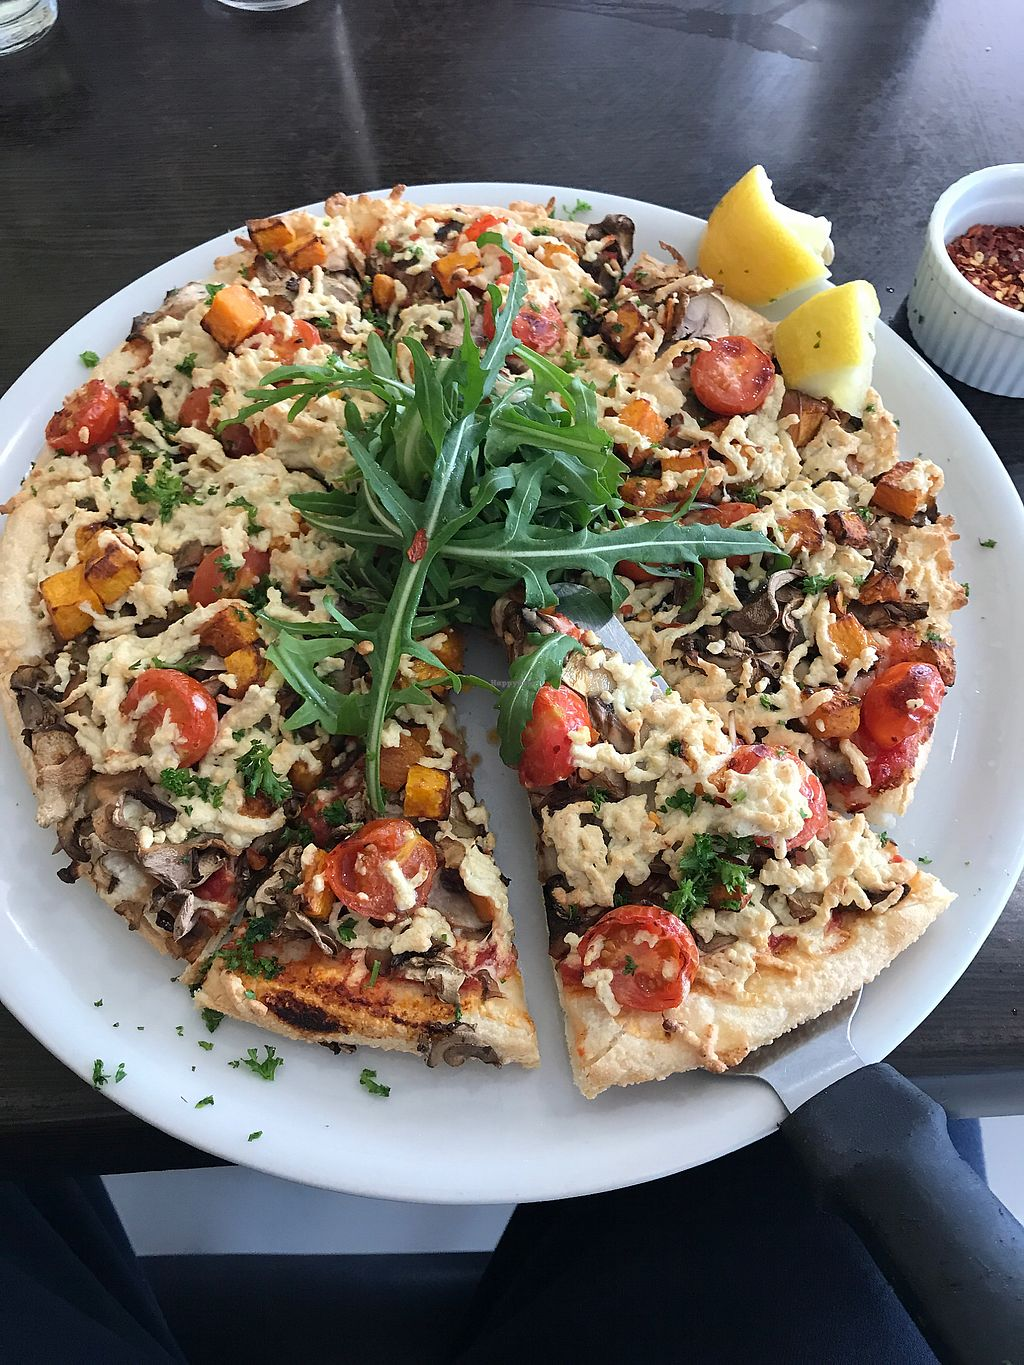 """Photo of Pizza Obsession  by <a href=""""/members/profile/DanielBarryJenkins"""">DanielBarryJenkins</a> <br/>Vegan pizza with vegan cheese  <br/> October 1, 2017  - <a href='/contact/abuse/image/102042/310488'>Report</a>"""